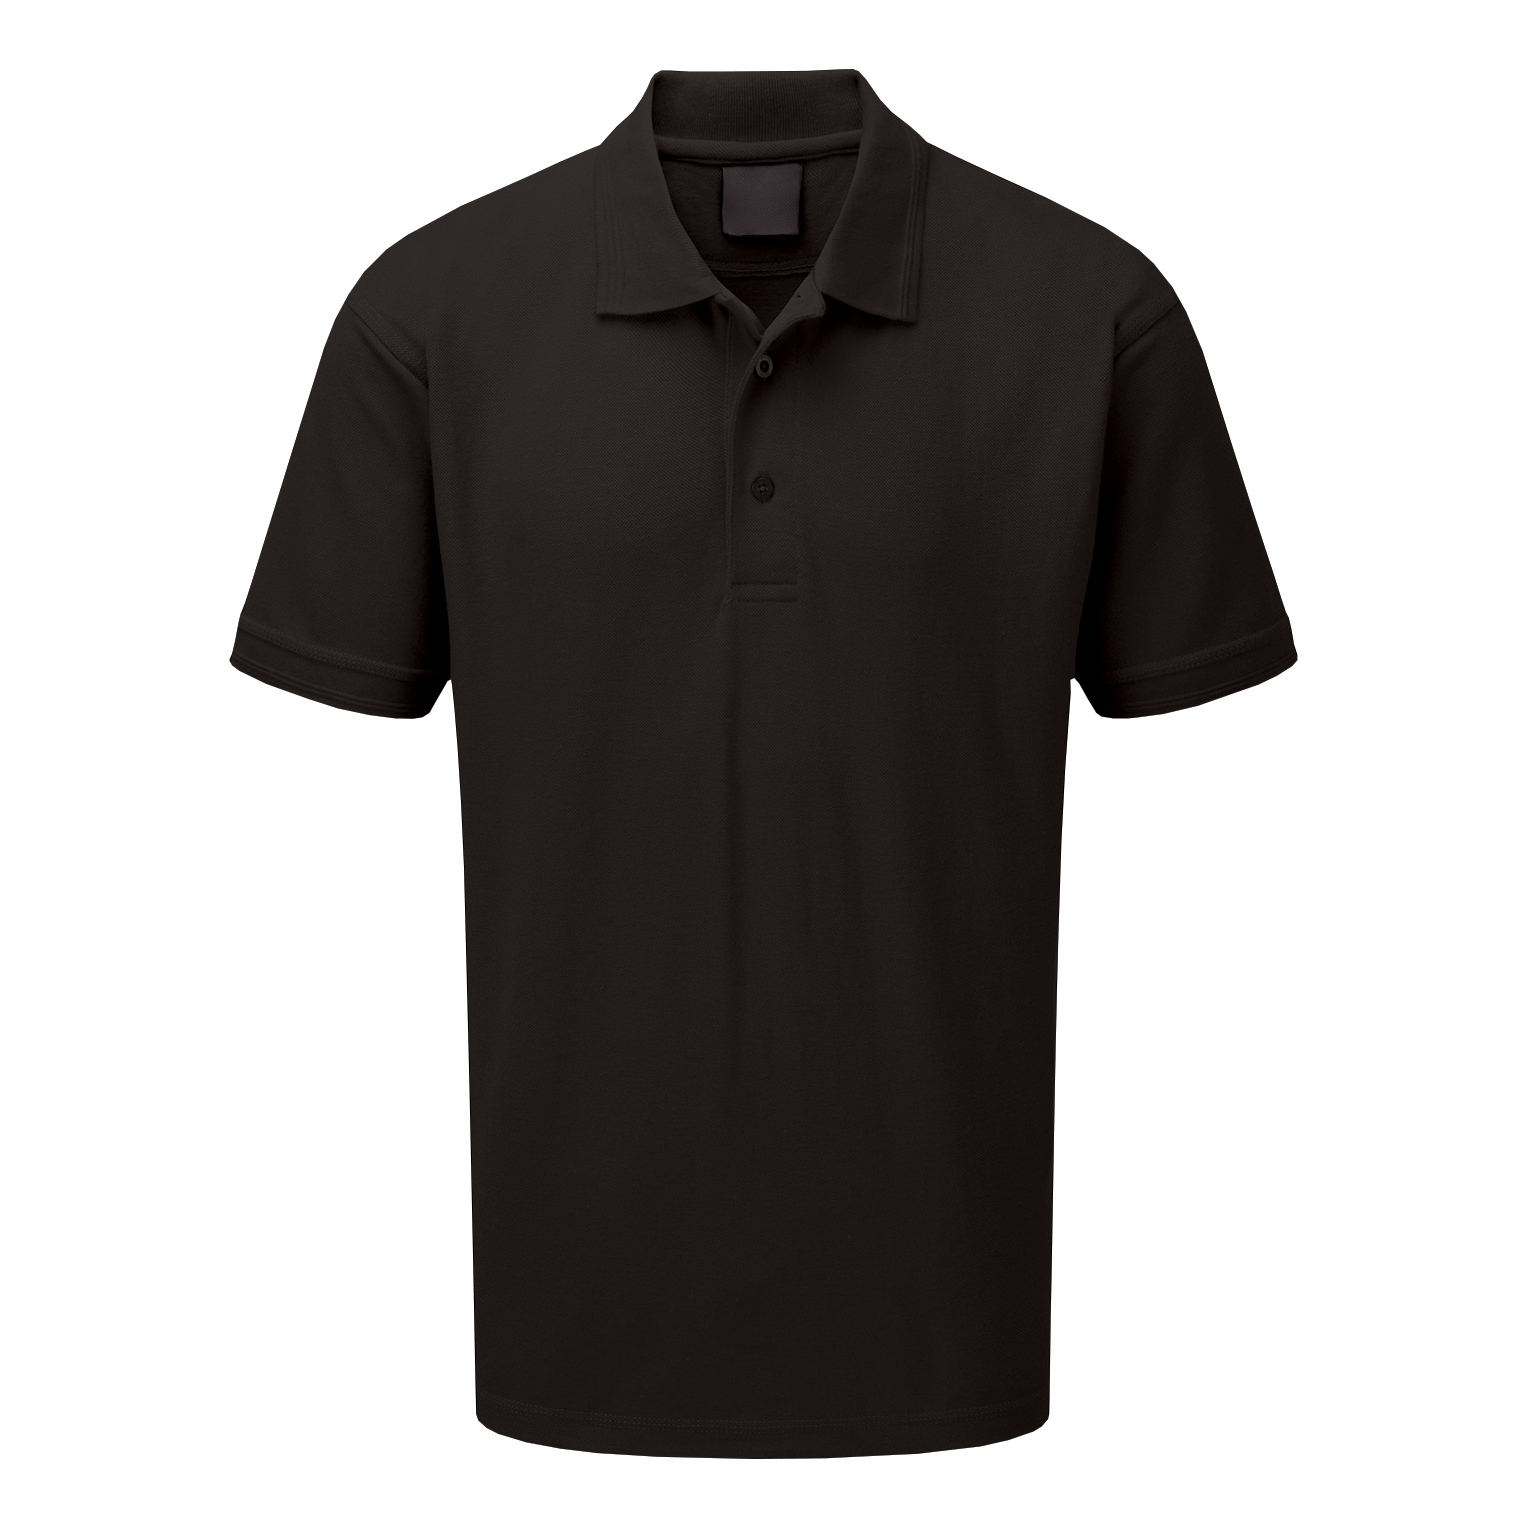 Supertouch Polo Shirt Classic Polycotton XXLarge Black Ref 56CA5 *Approx 3 Day Leadtime*